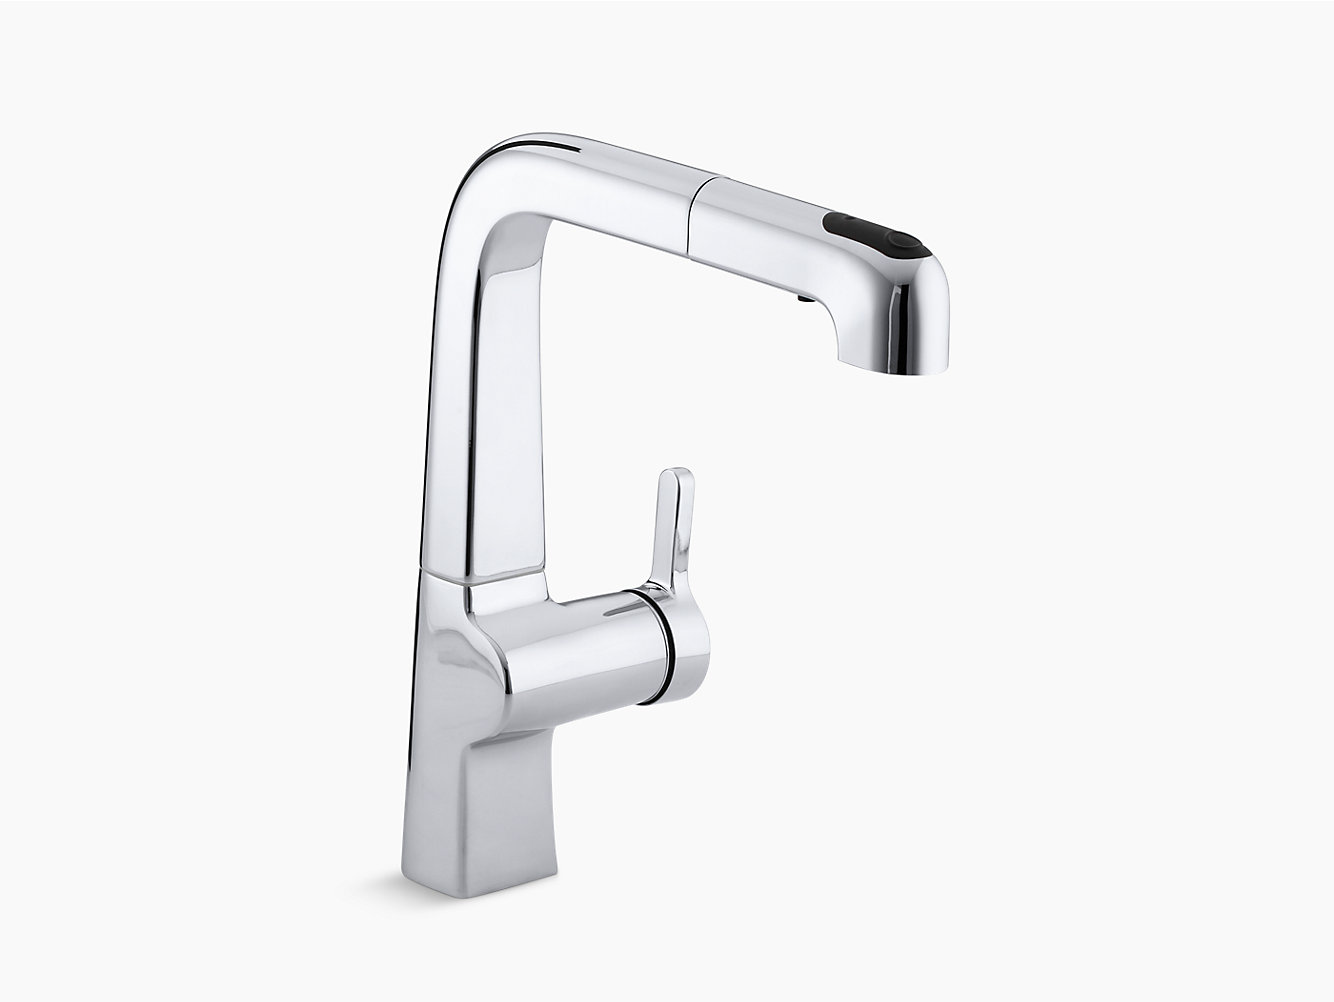 K-6331 | Evoke Single-Handle Kitchen Faucet | KOHLER